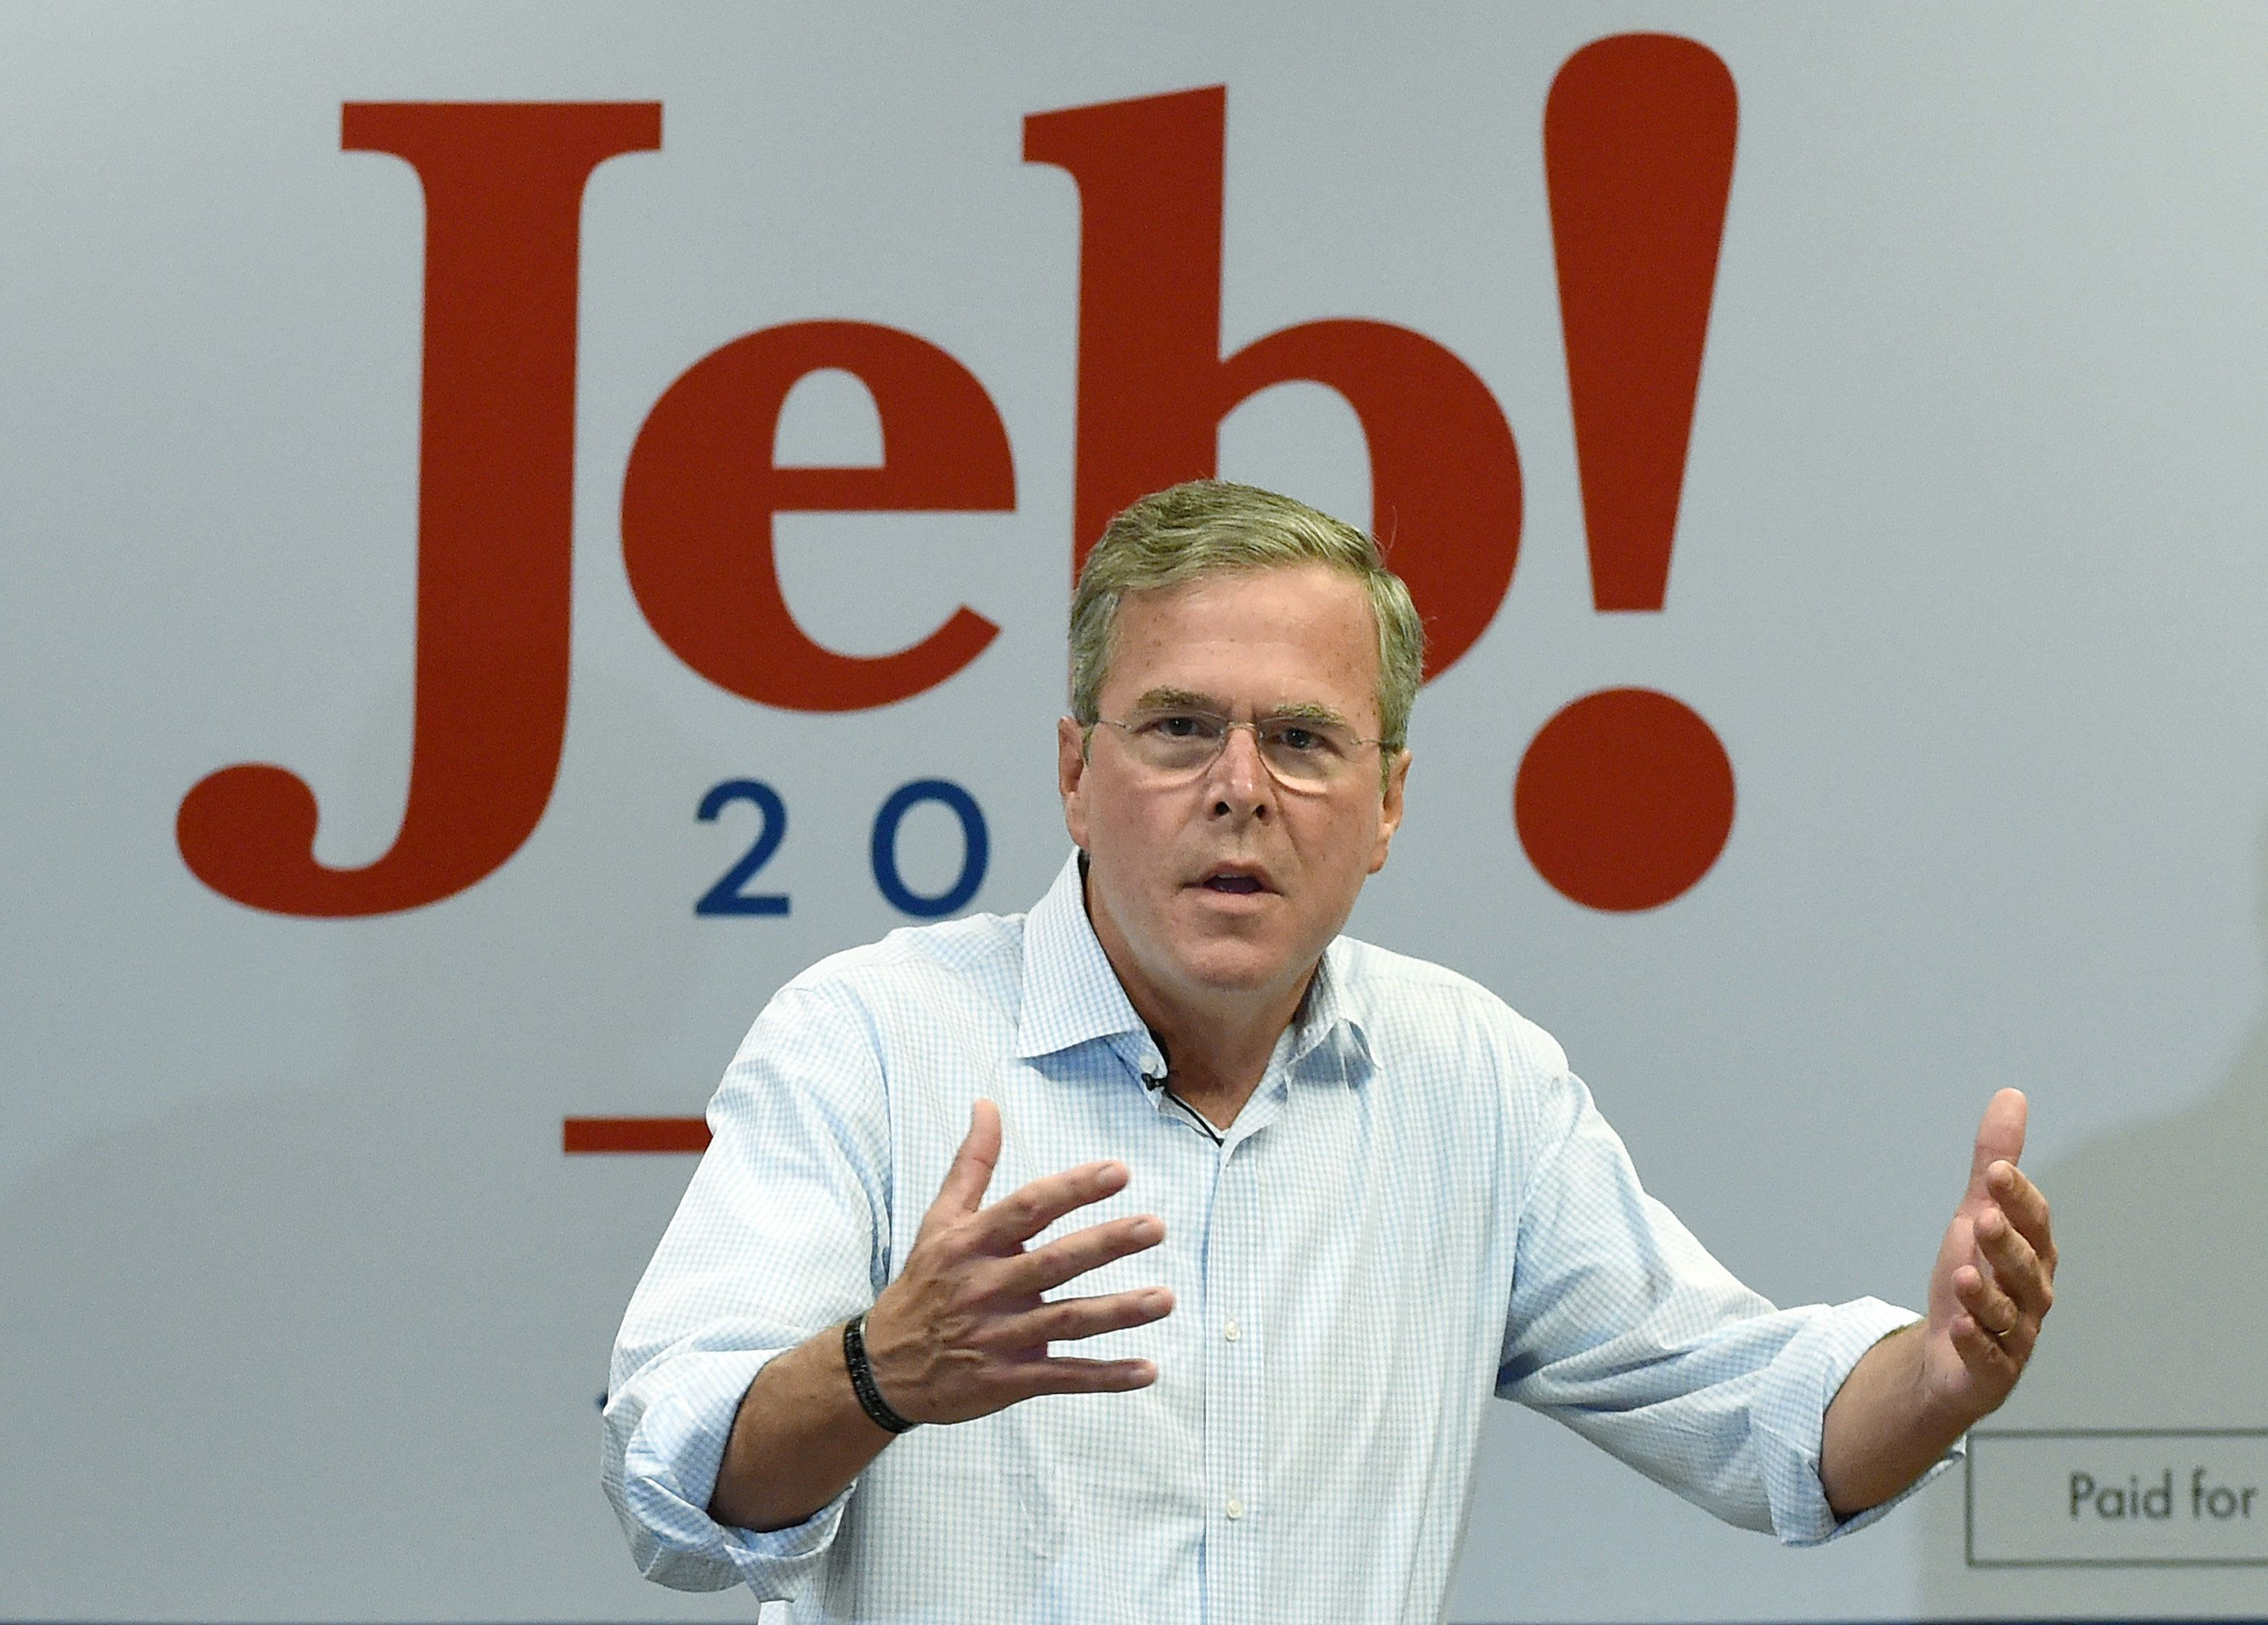 LAS VEGAS, NV - SEPTEMBER 17:  Republican presidential candidate Jeb Bush speaks during a campaign rally at the Veterans Memorial Leisure Services Center on September 17, 2015 in Las Vegas, Nevada. Bush is campaigning in Nevada after participating in the second Republican debate yesterday in California.  (Photo by Ethan Miller/Getty Images)